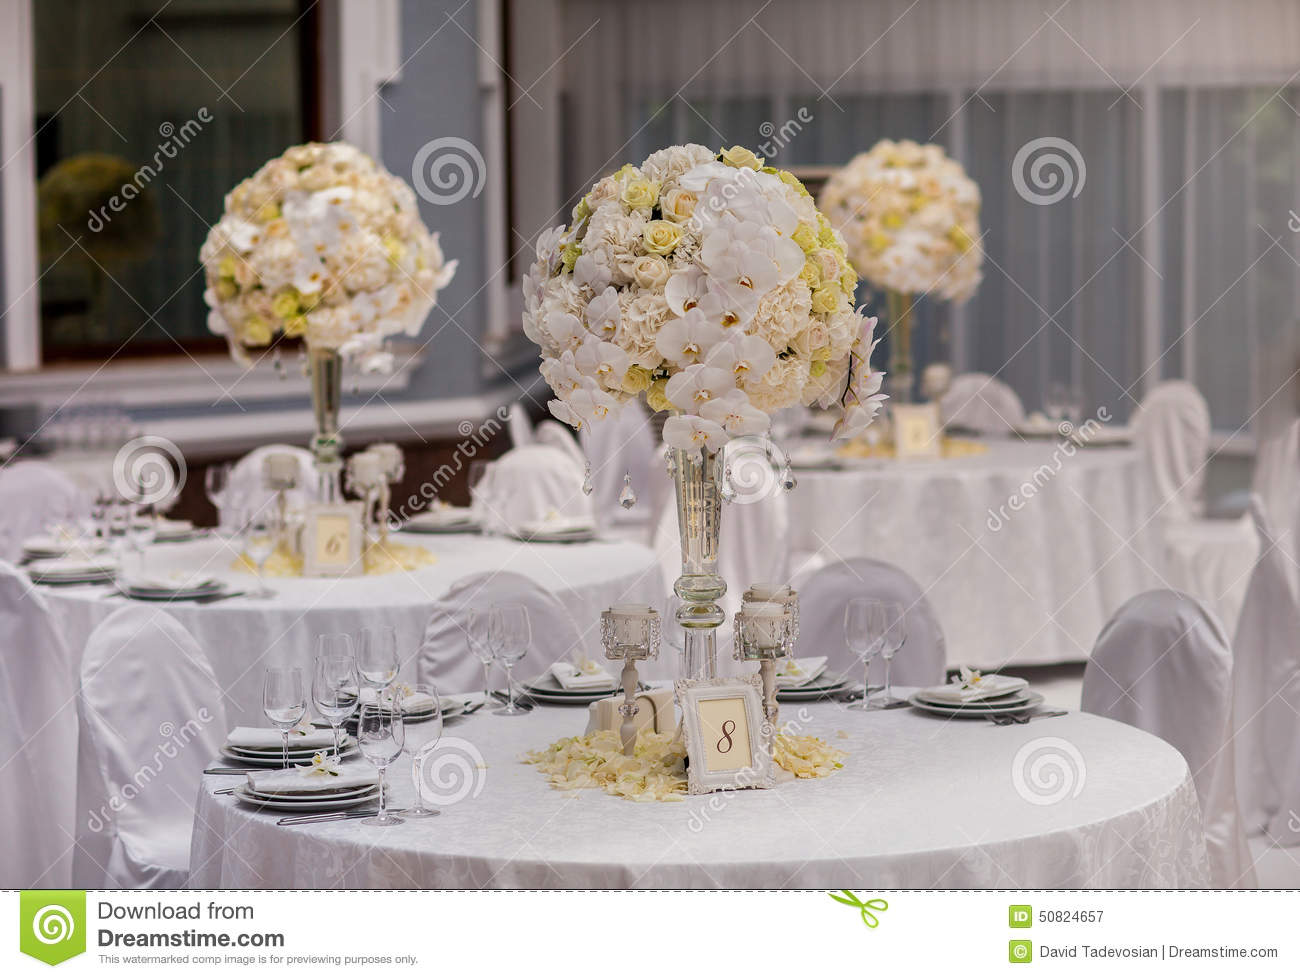 Wedding party table decorations stock image image of for Wedding party table decorations